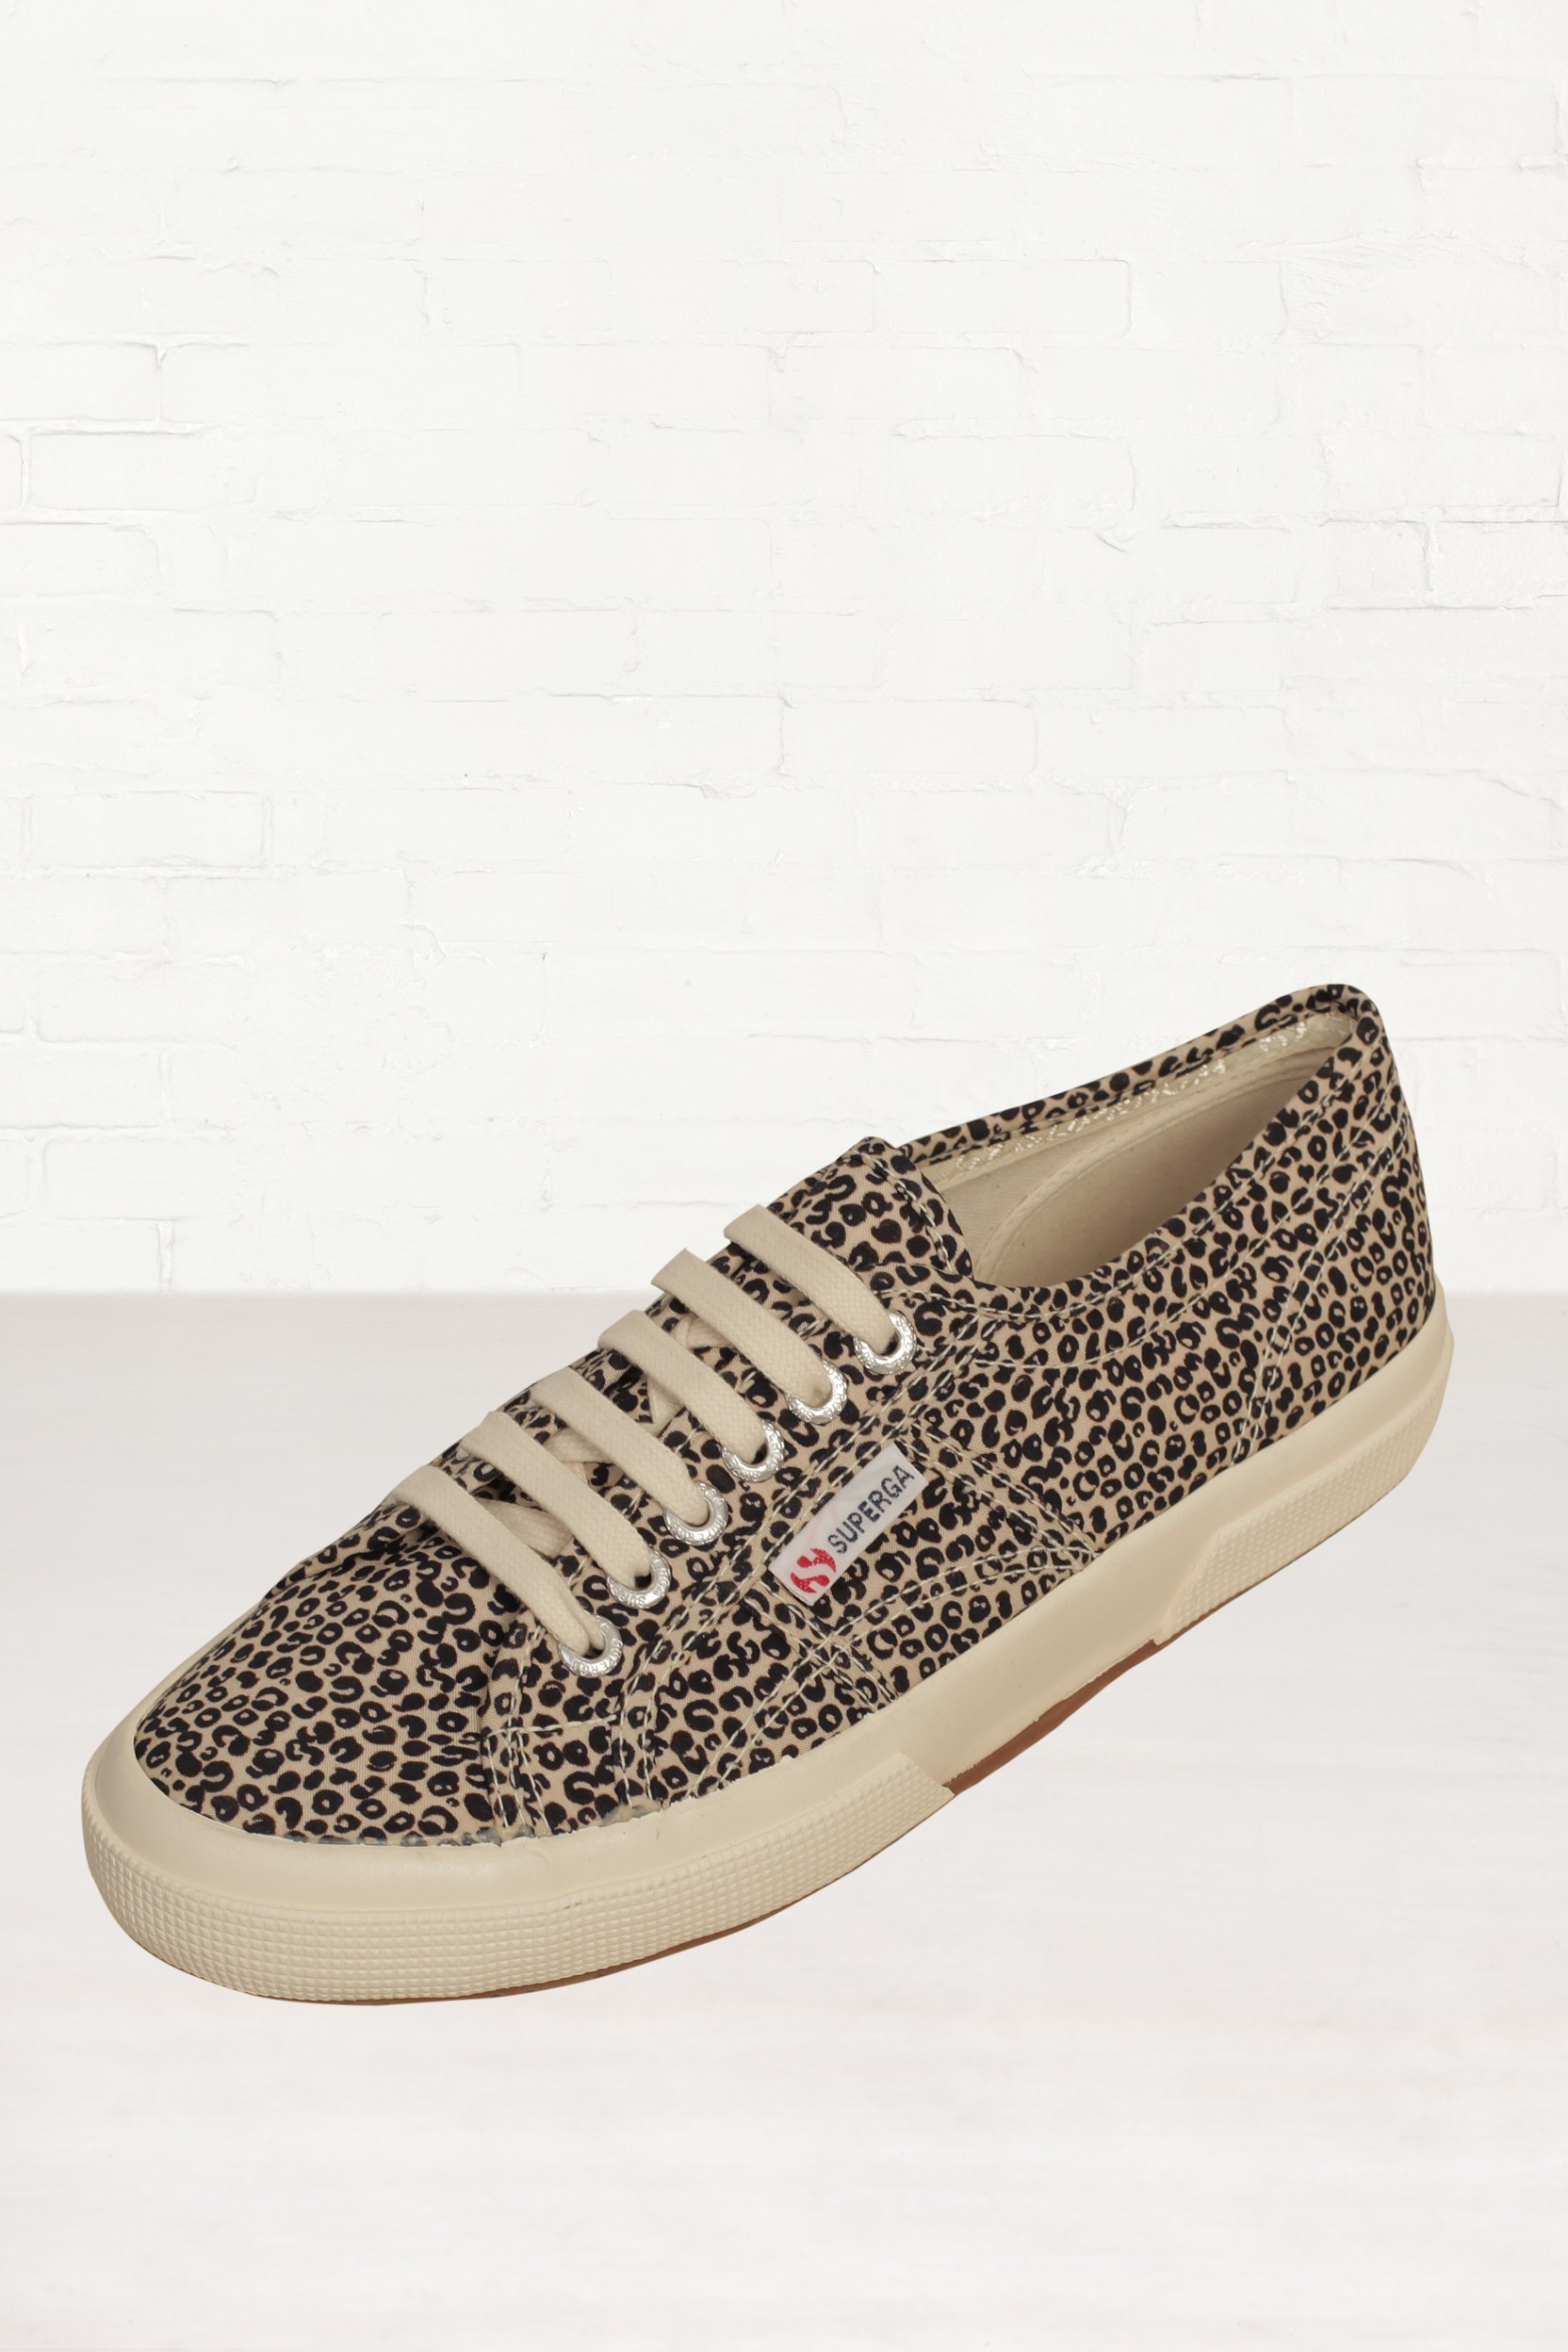 superga cotu classic leopard print sneakers in animal leopard lyst. Black Bedroom Furniture Sets. Home Design Ideas